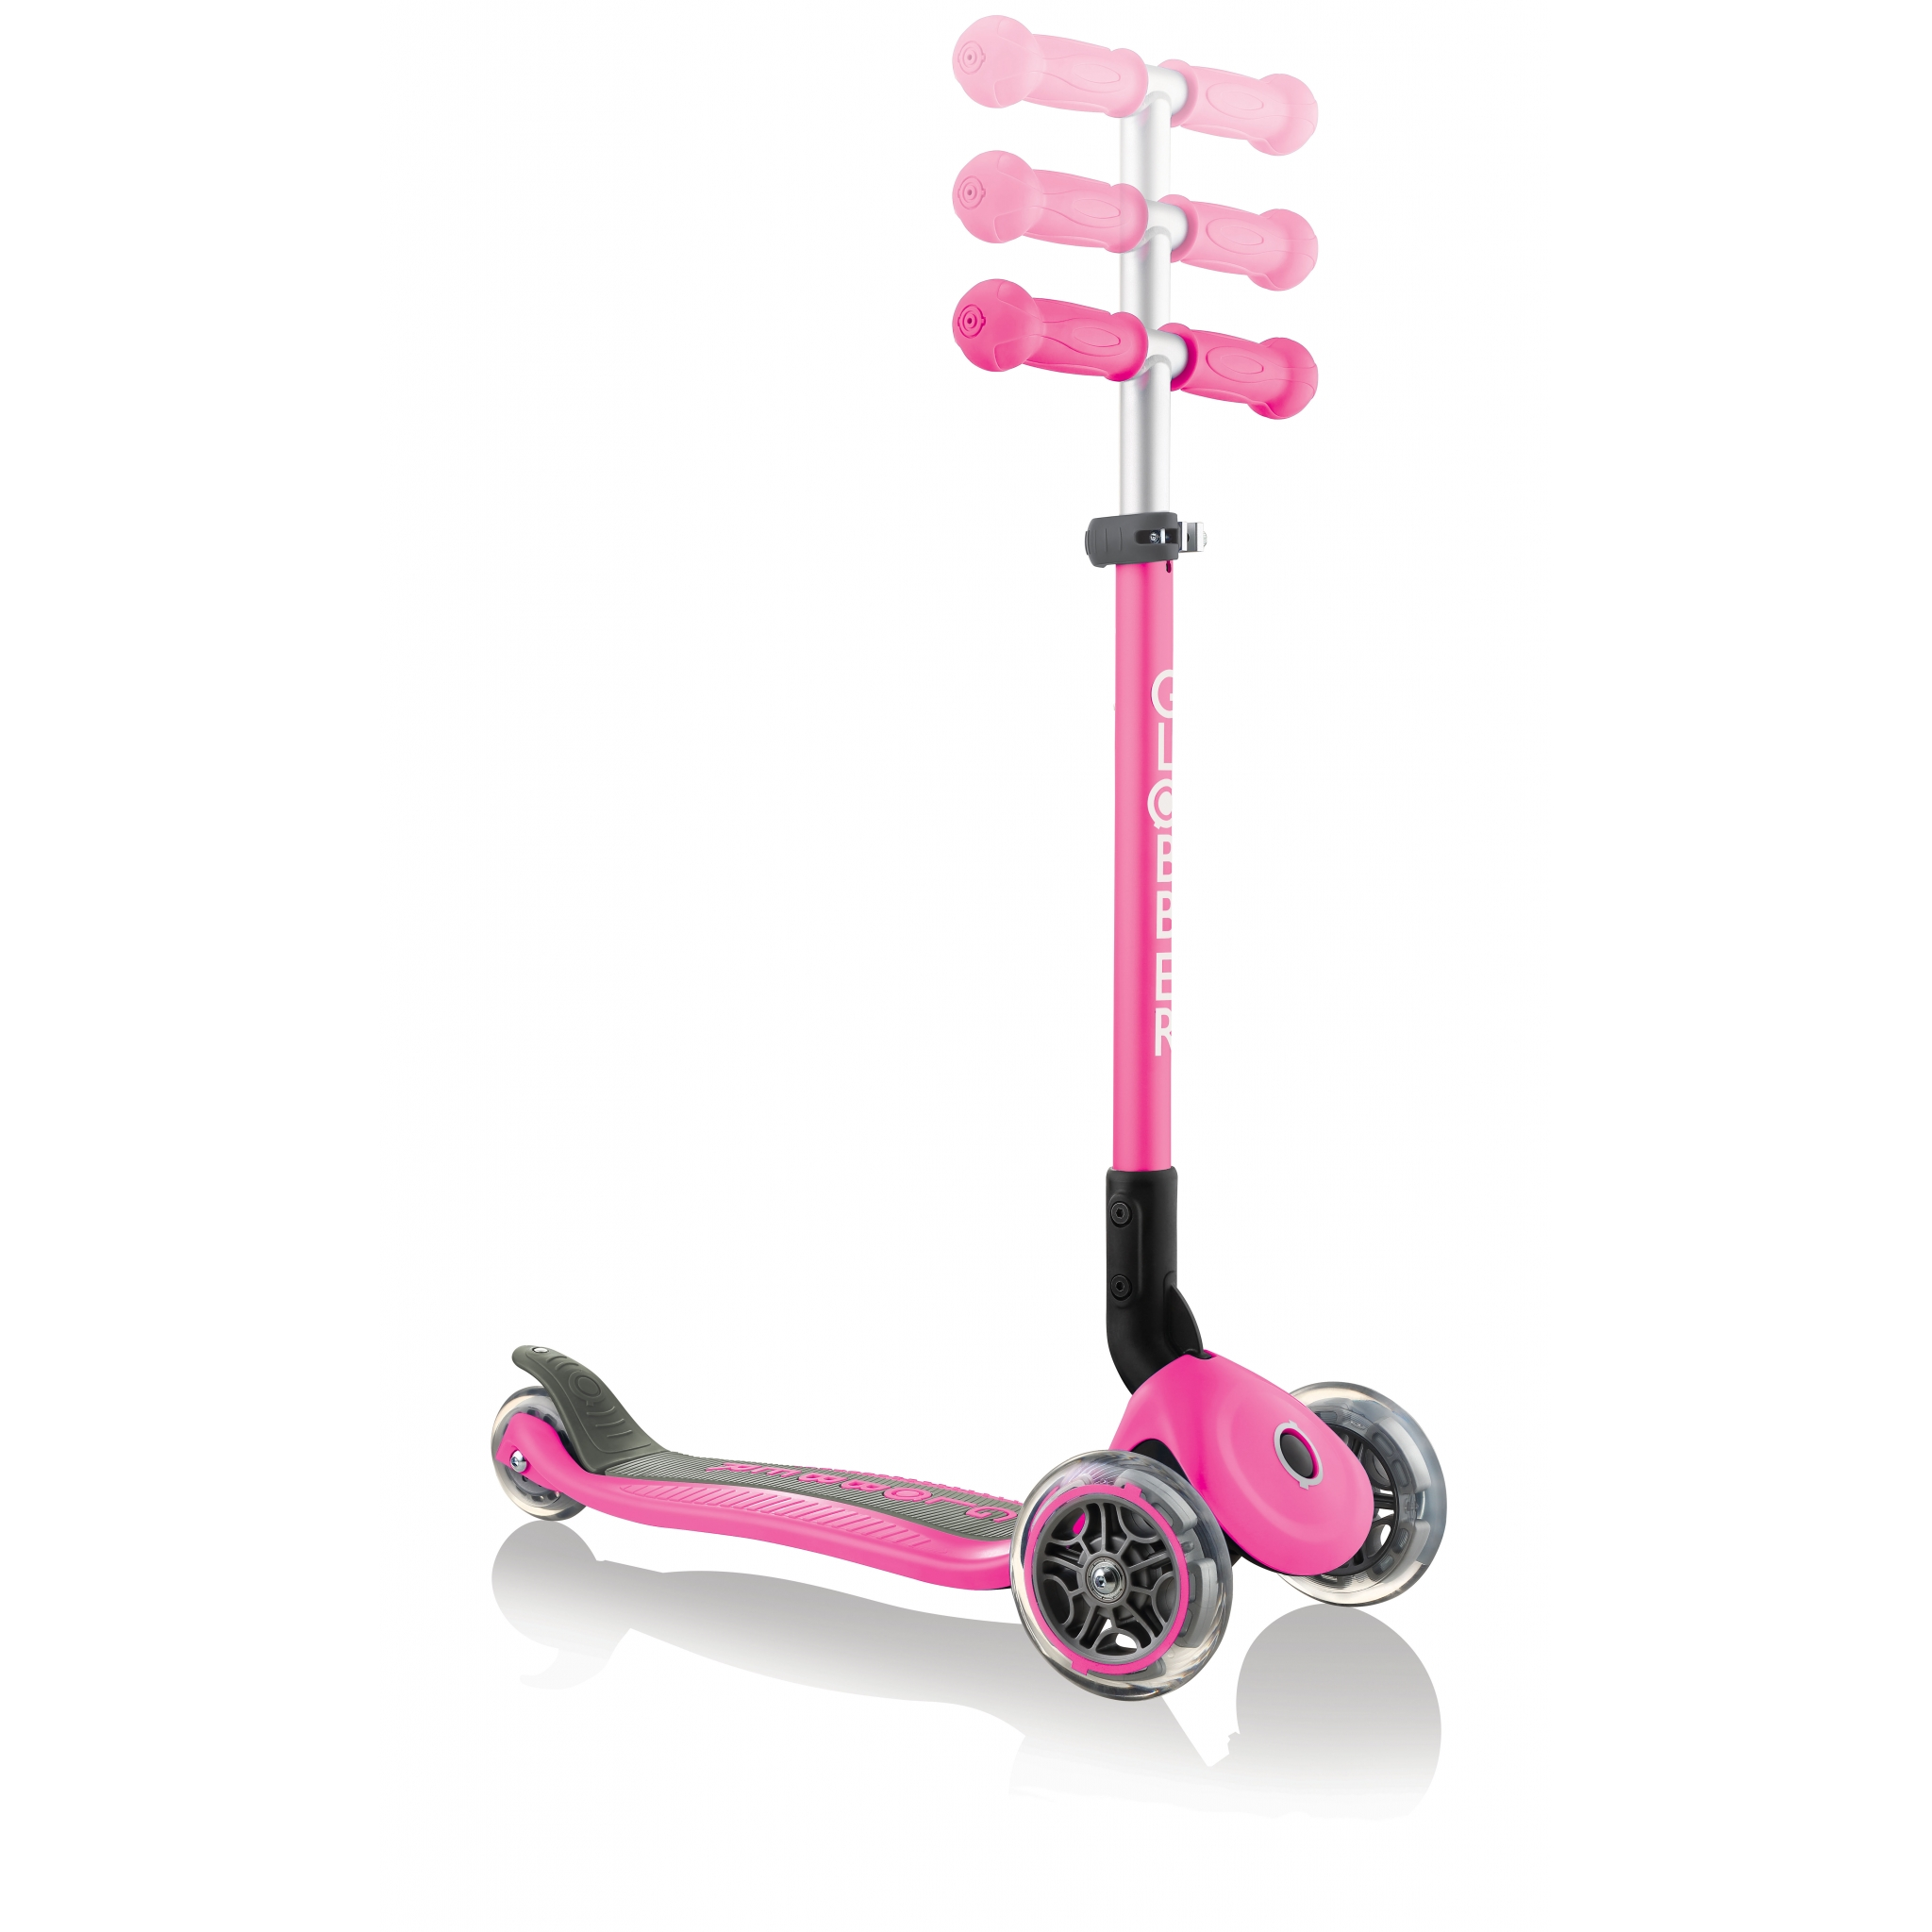 PRIMO-FOLDABLE-adjustable-scooter-for-kids-neon-pink 3